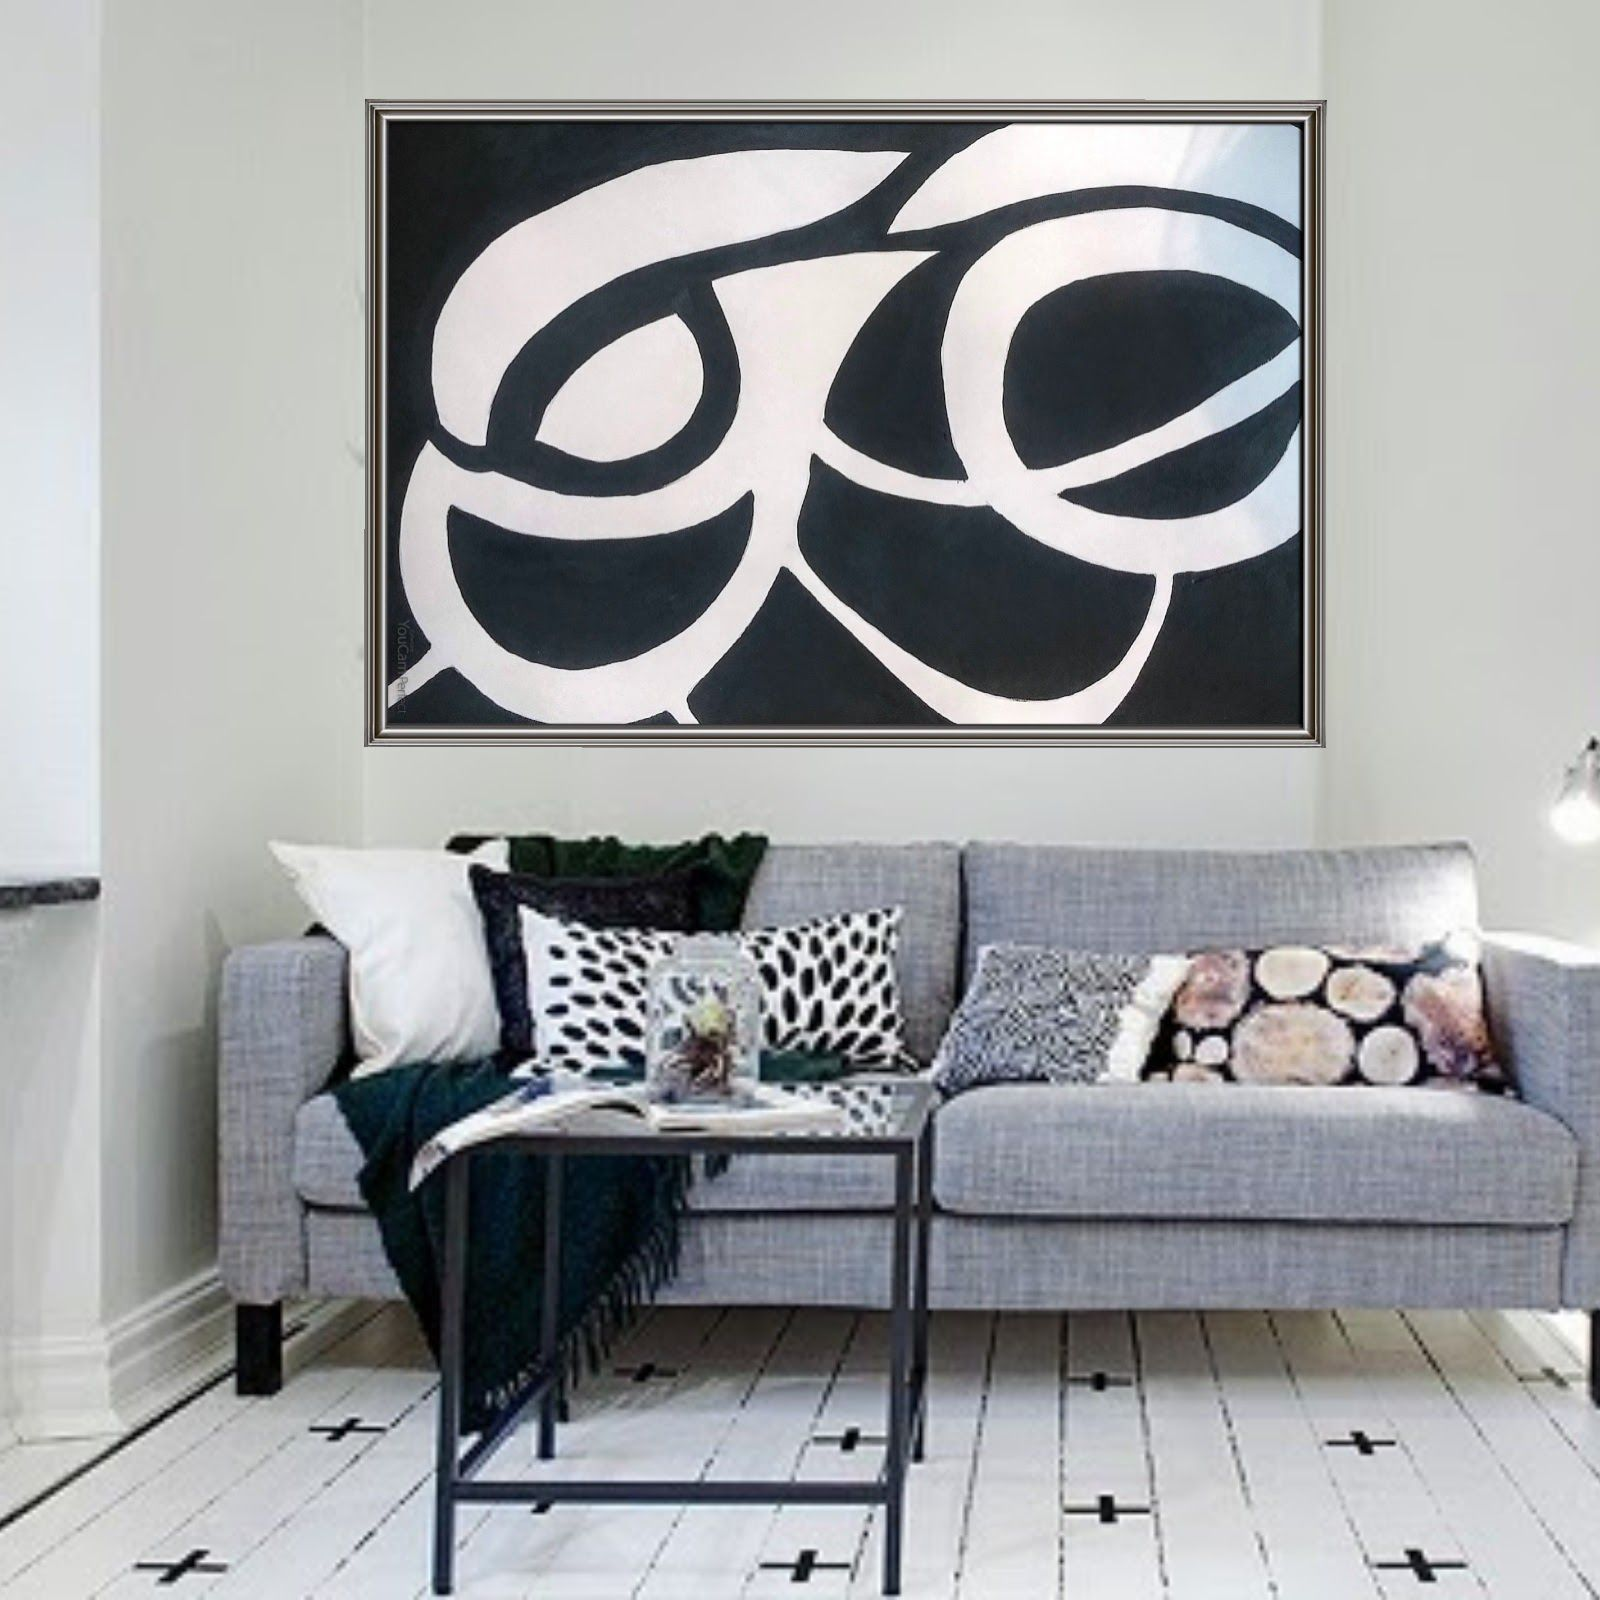 Black And White Painting Ides For Abstract Paintings And Abstract Art For Your  Home Decor, Design Inspirations